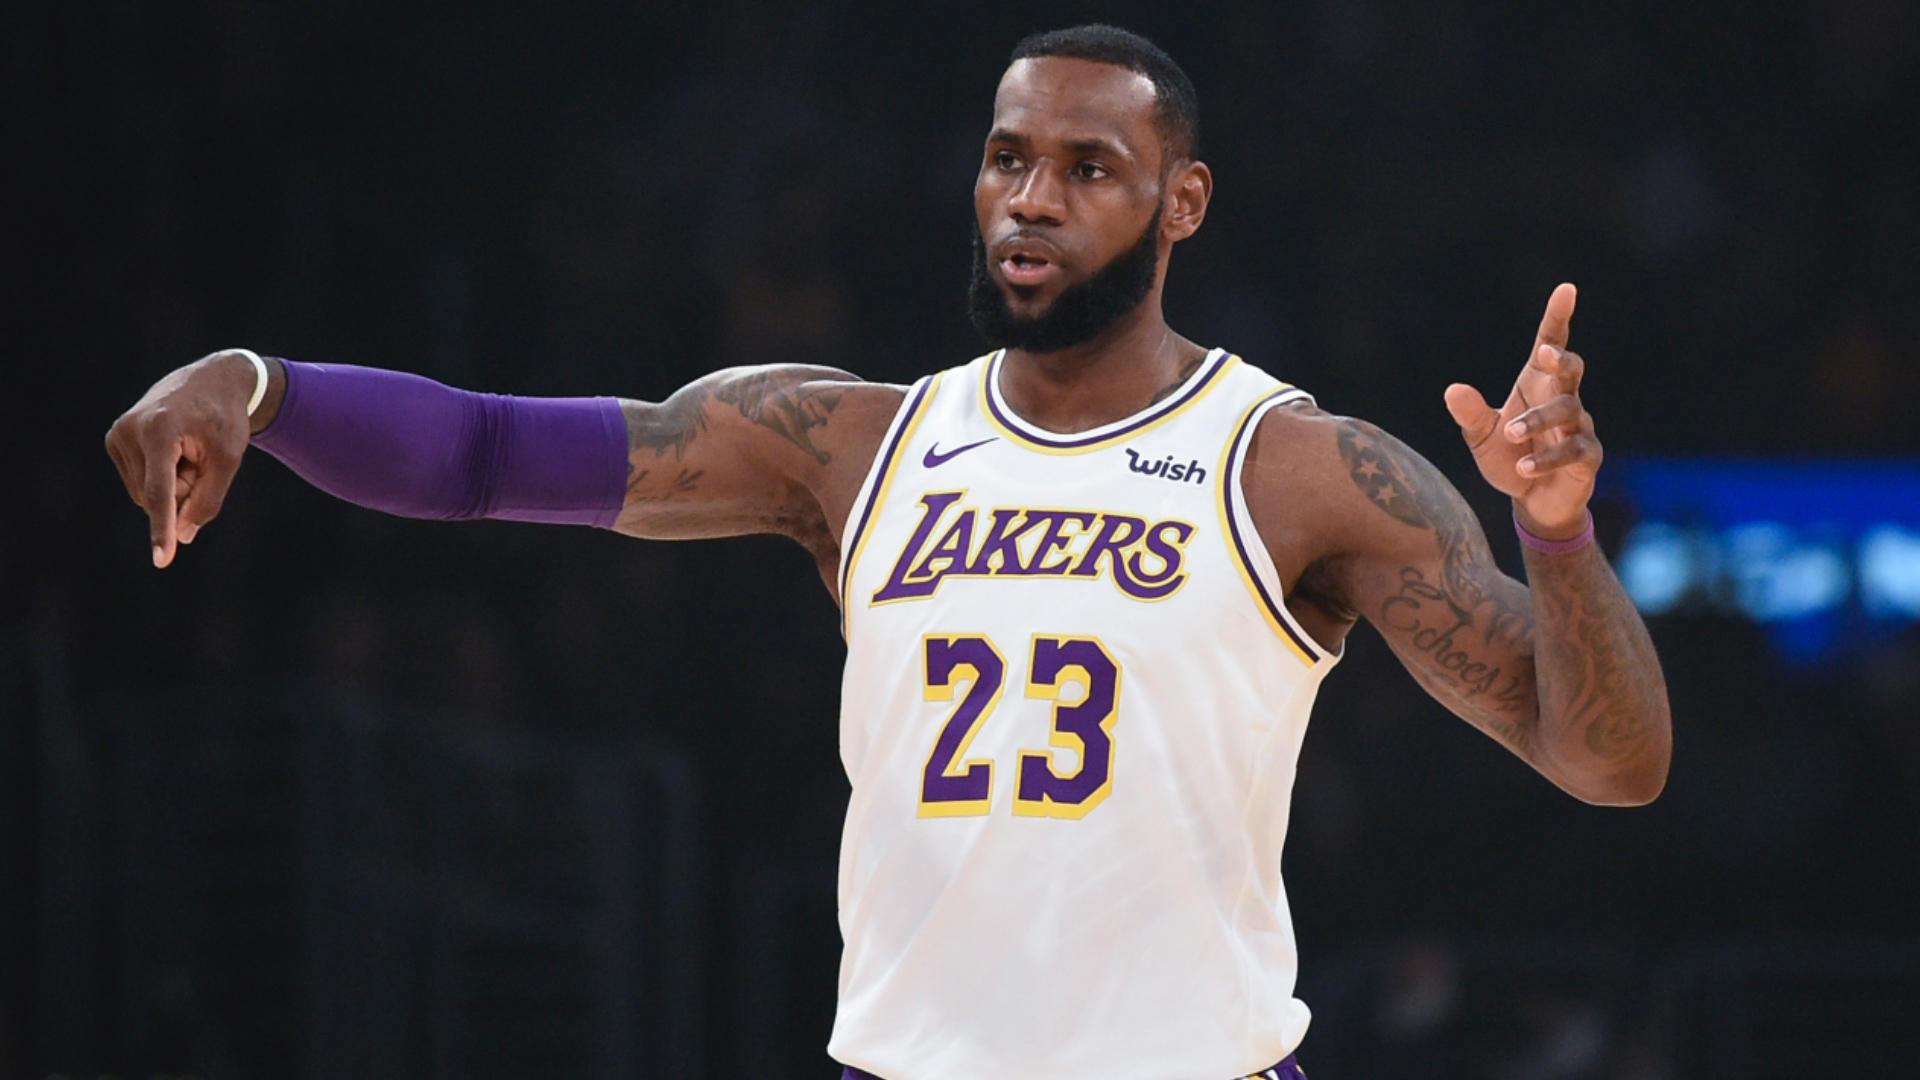 LeBron James had at least one thing right when he declared himself the greatest player of all time